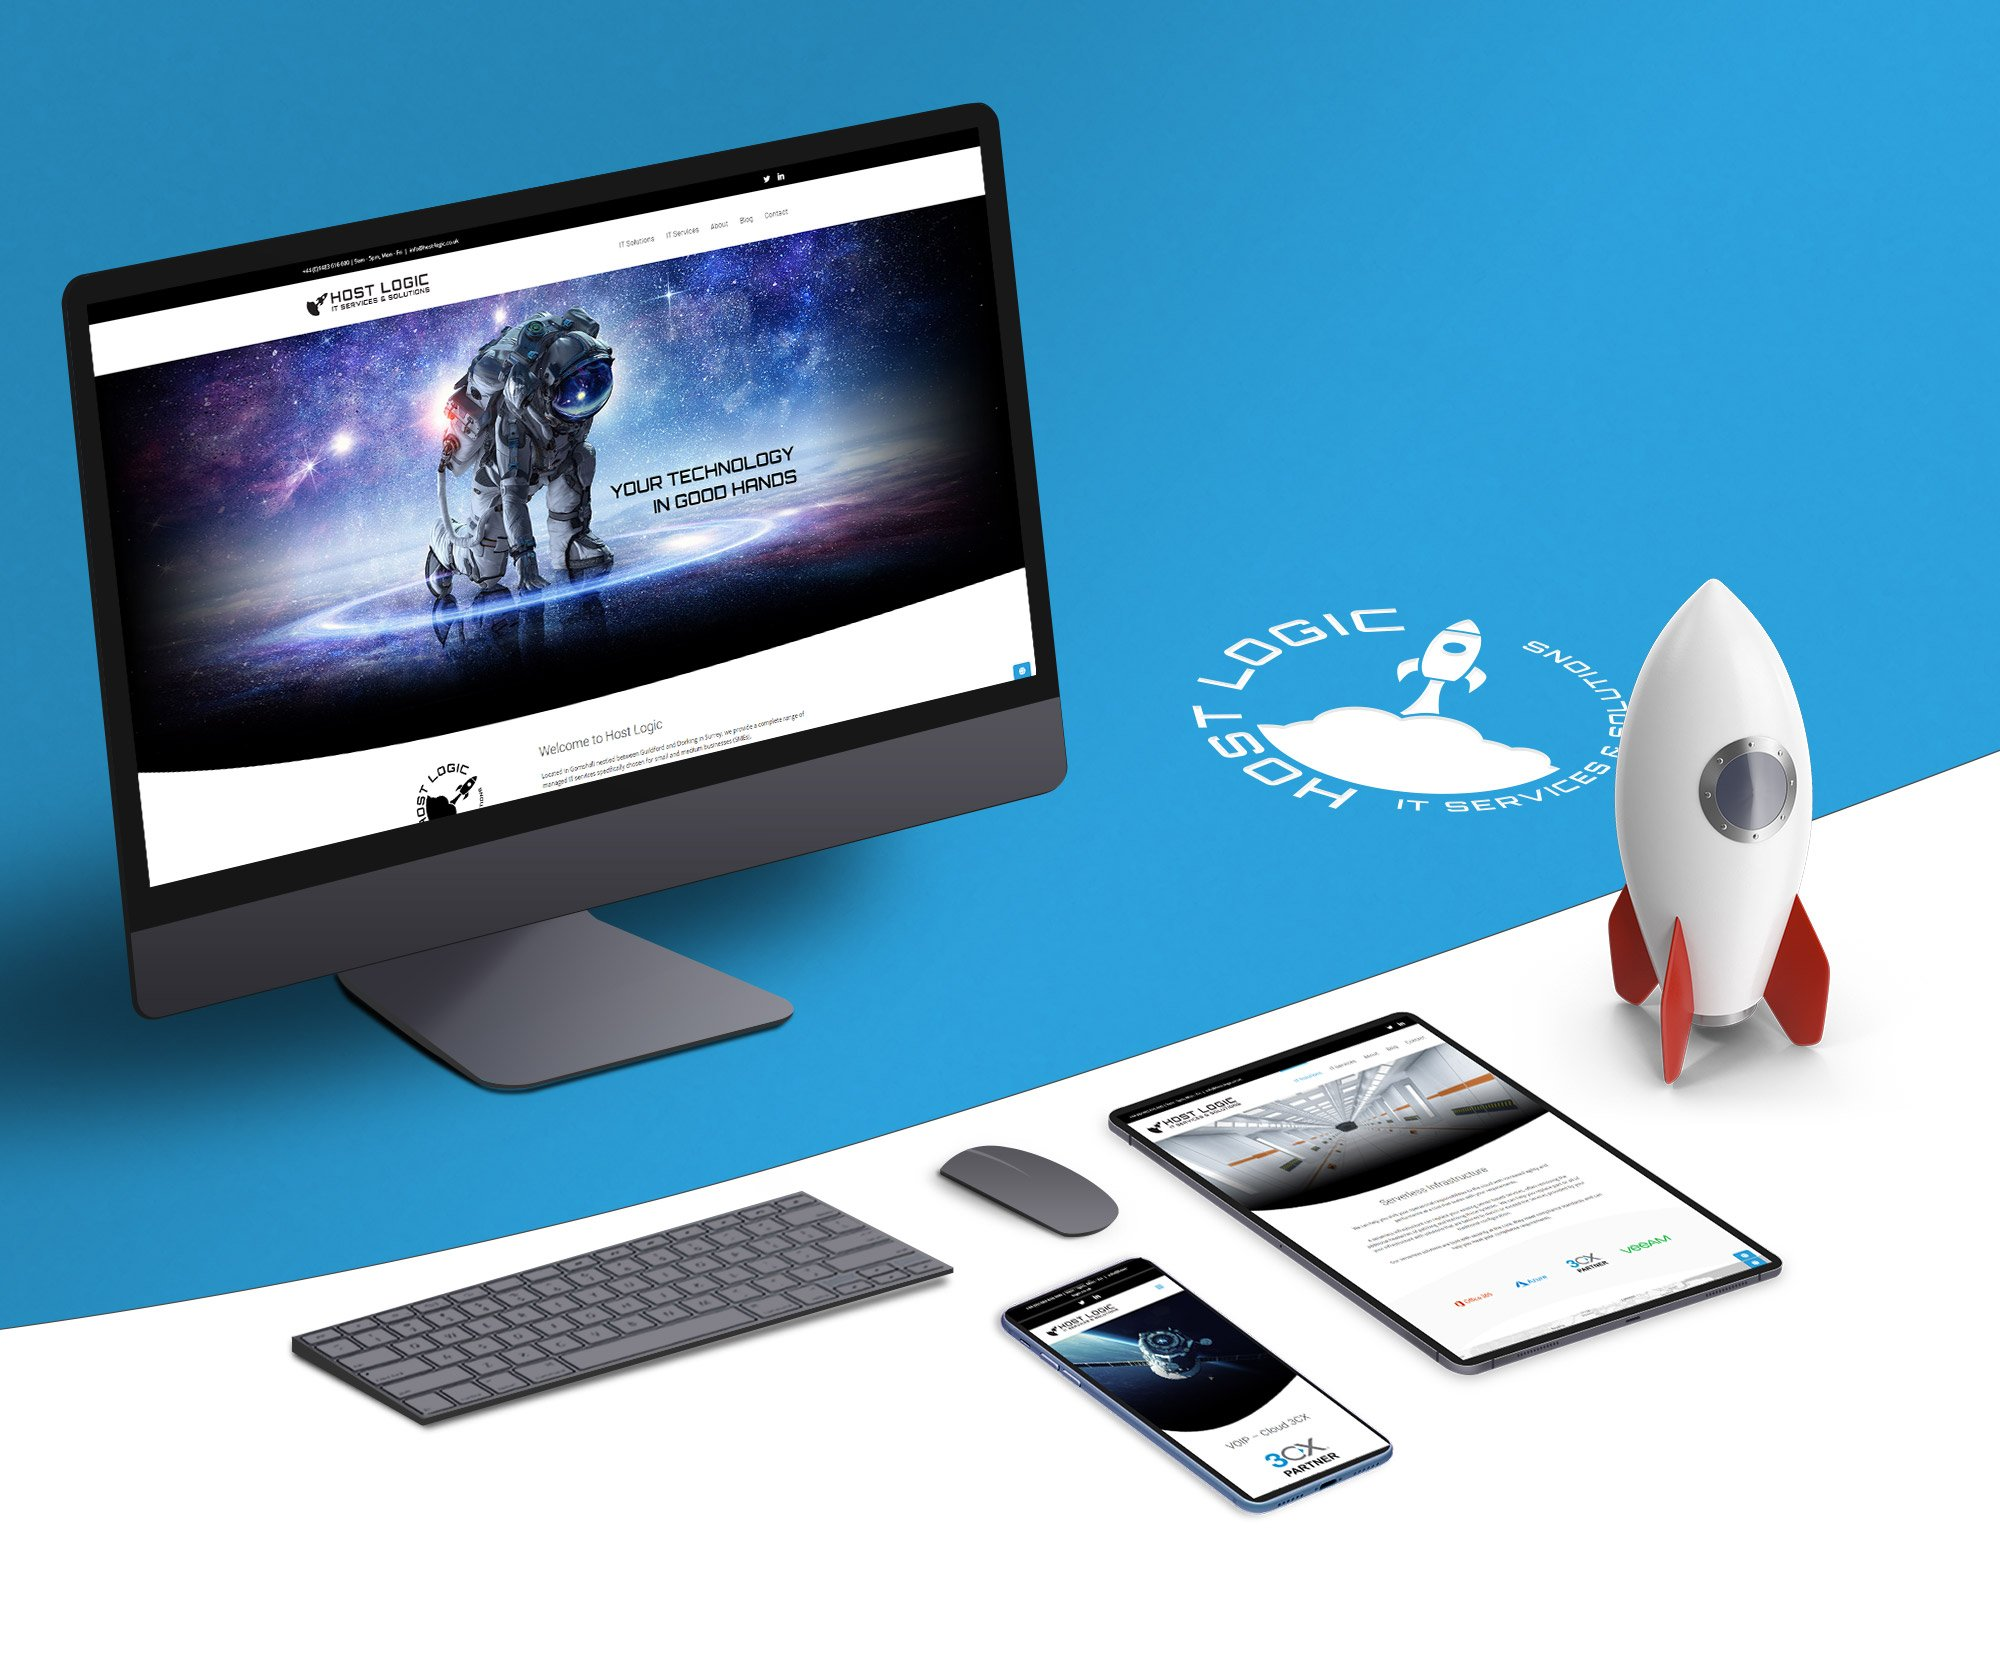 Host Logic logo and rocket with devices showing mobile variations of the website.